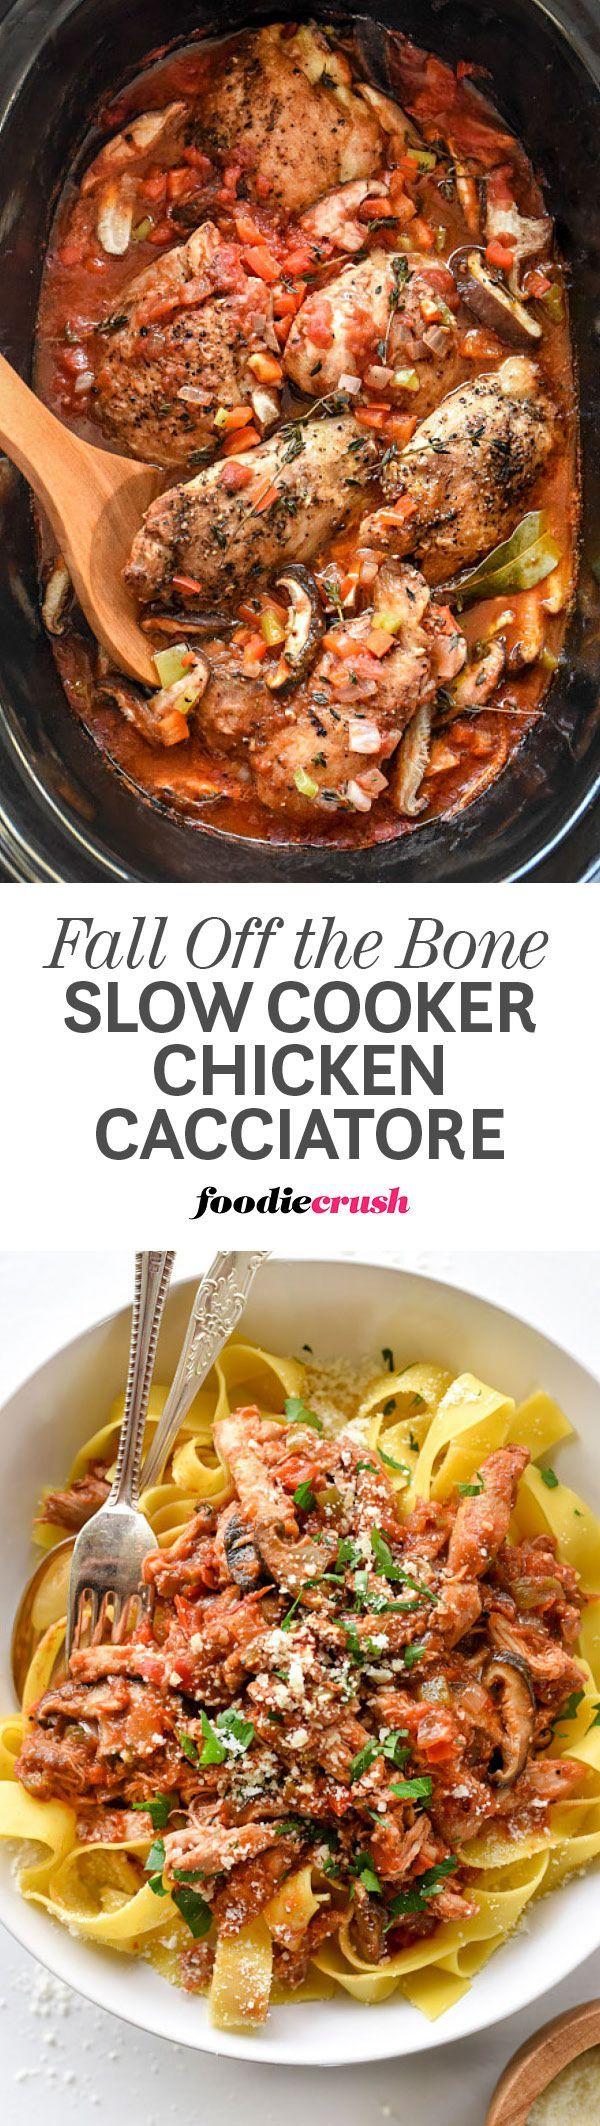 Slow-cooked bone-in, skinless chicken thighs create the luxe flavor in this savory Slow Cooker Chicken Cacciatore dinner that pairs perfectly with pasta for an incredibly easy weeknight or weekend meal | foodiecrush.com #chicken #slowcooker #crockpot #instantpot